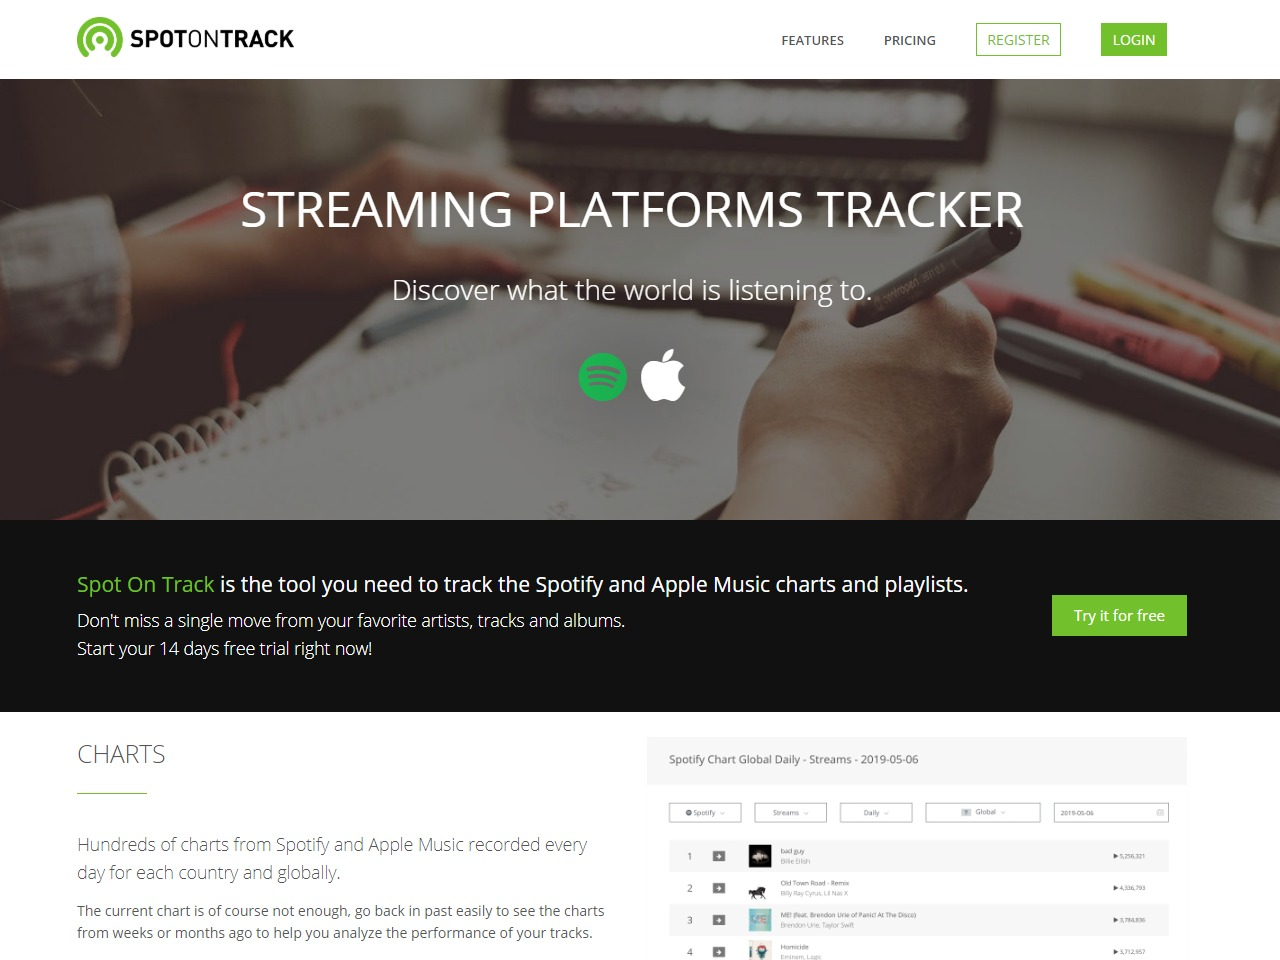 Spot On Track - The Spotify Apple Music tracker